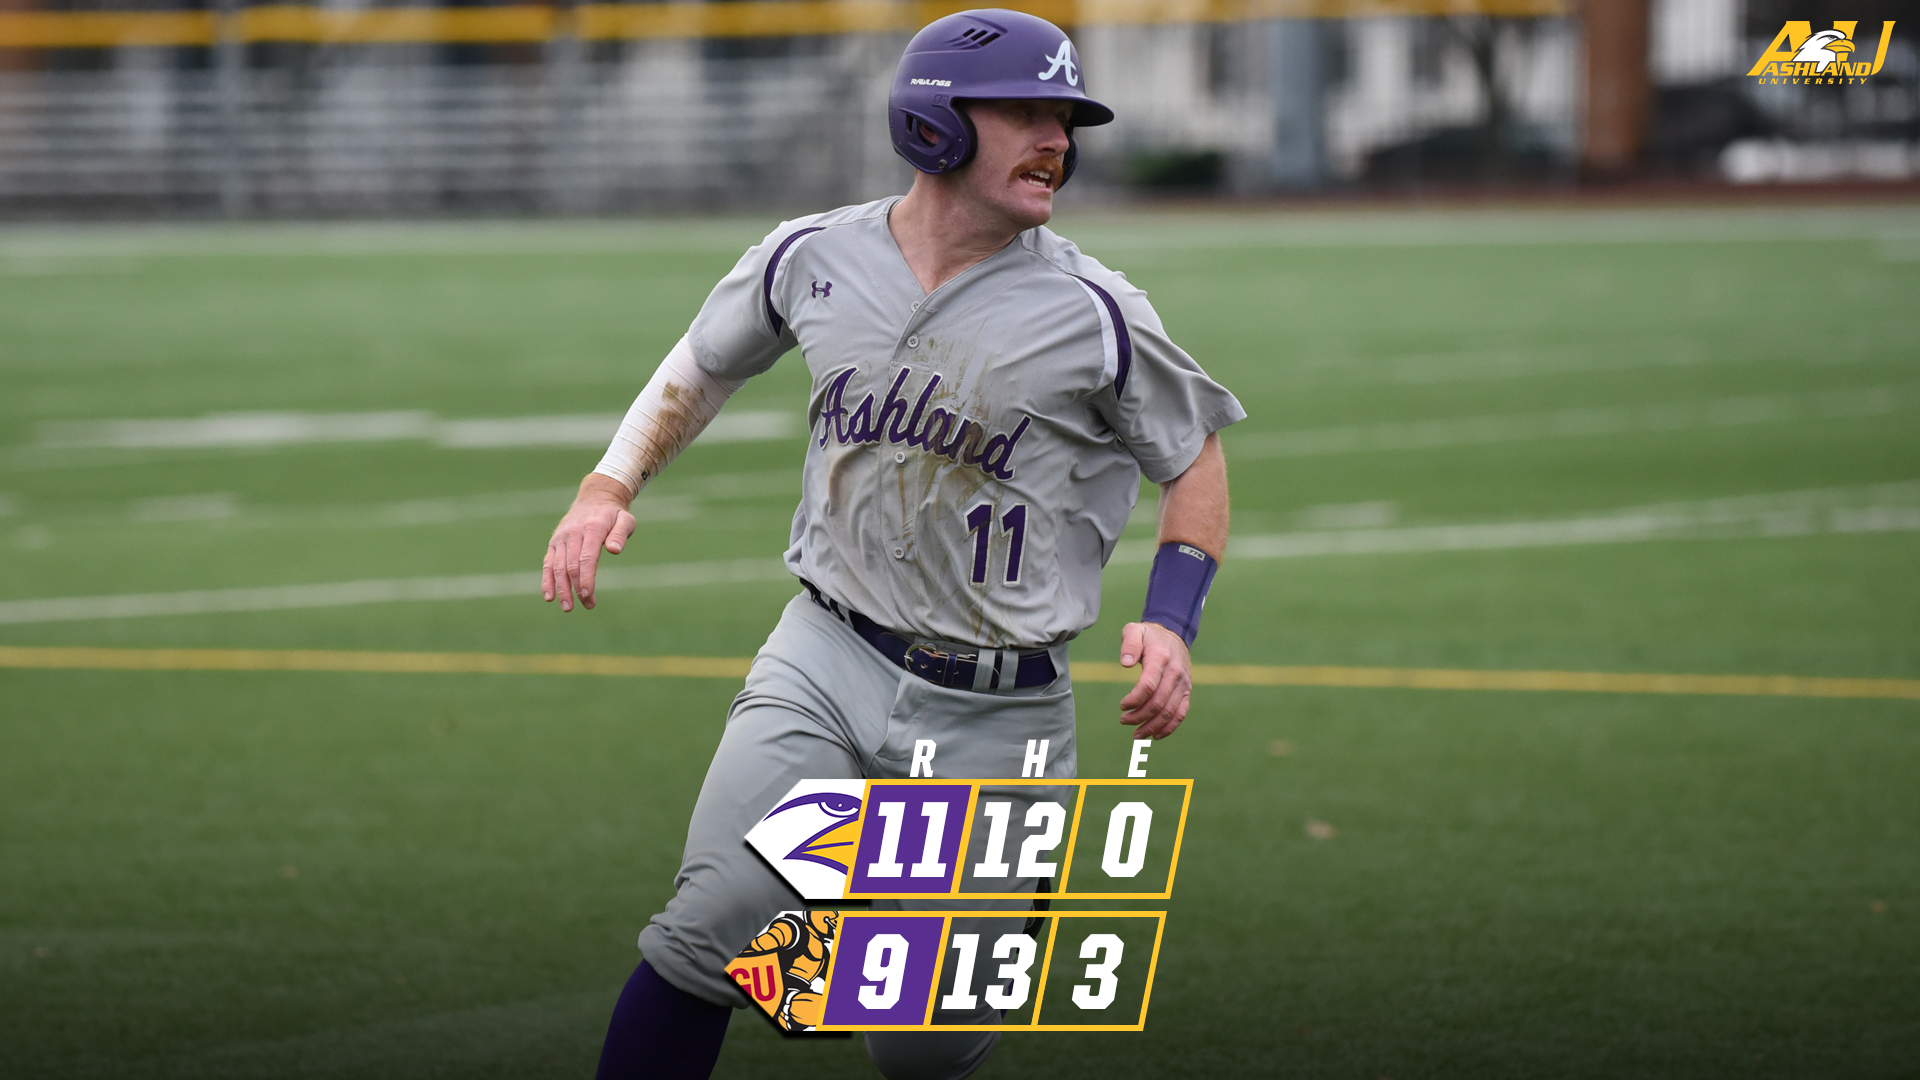 #25 Eagles Hang On For 11-9 Win At Gannon